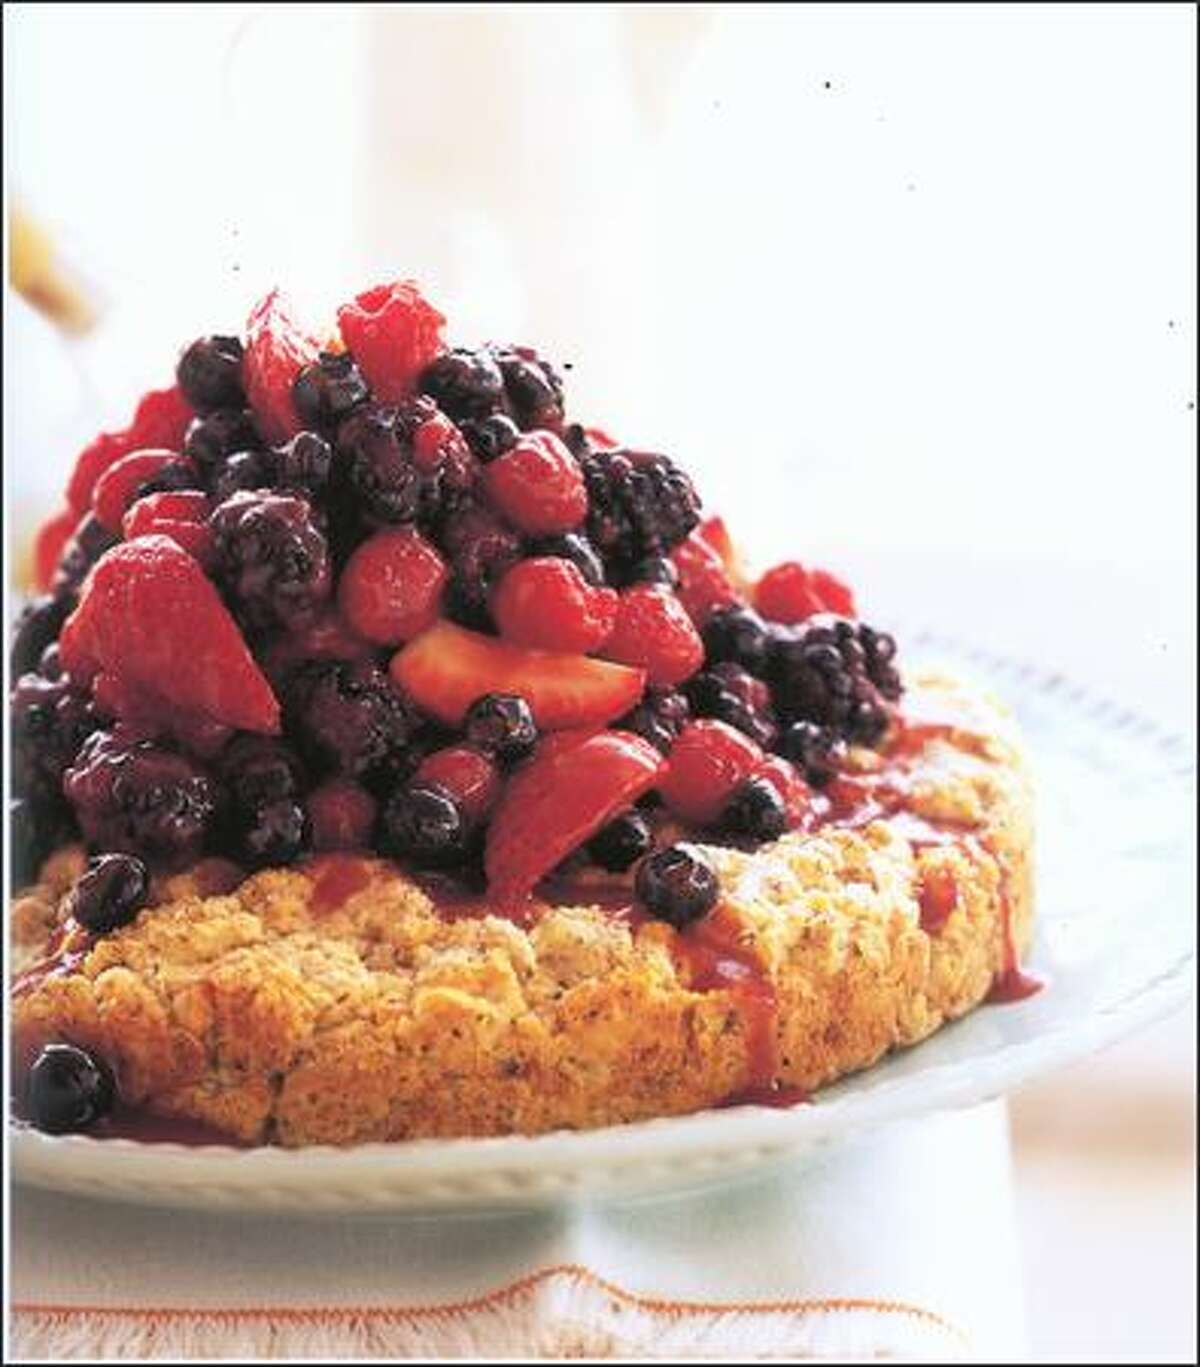 The name of this recipe, One Big Hazelnut Shortcake With Caramel Berries, from Lori Longbotham's